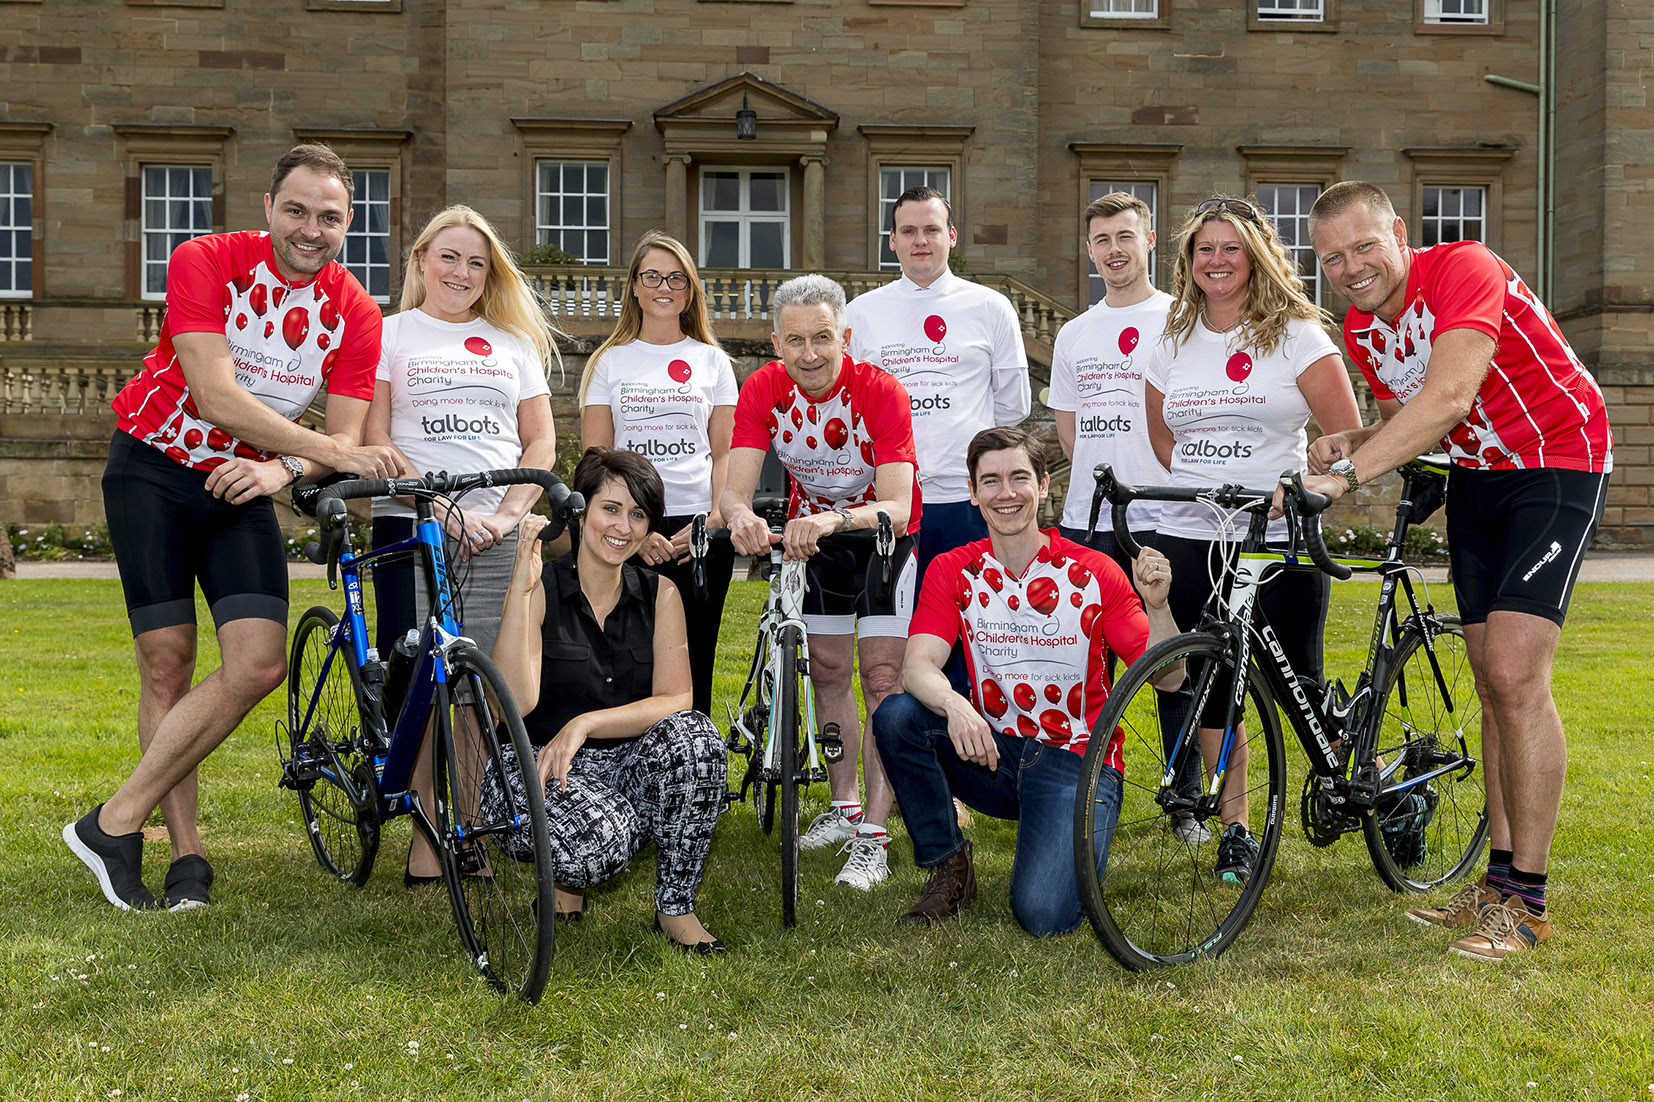 Talbots Law Callum Haynes, Sarah Rooney, Sara Jones, Peter Hill, Adam Howell, Chris Jones, Rachel Pardoe and Matt Wistow, with Kirsty White and James Lunney, of Birmingham Children's Hospital, front. Photo: Jonathan Hipkiss